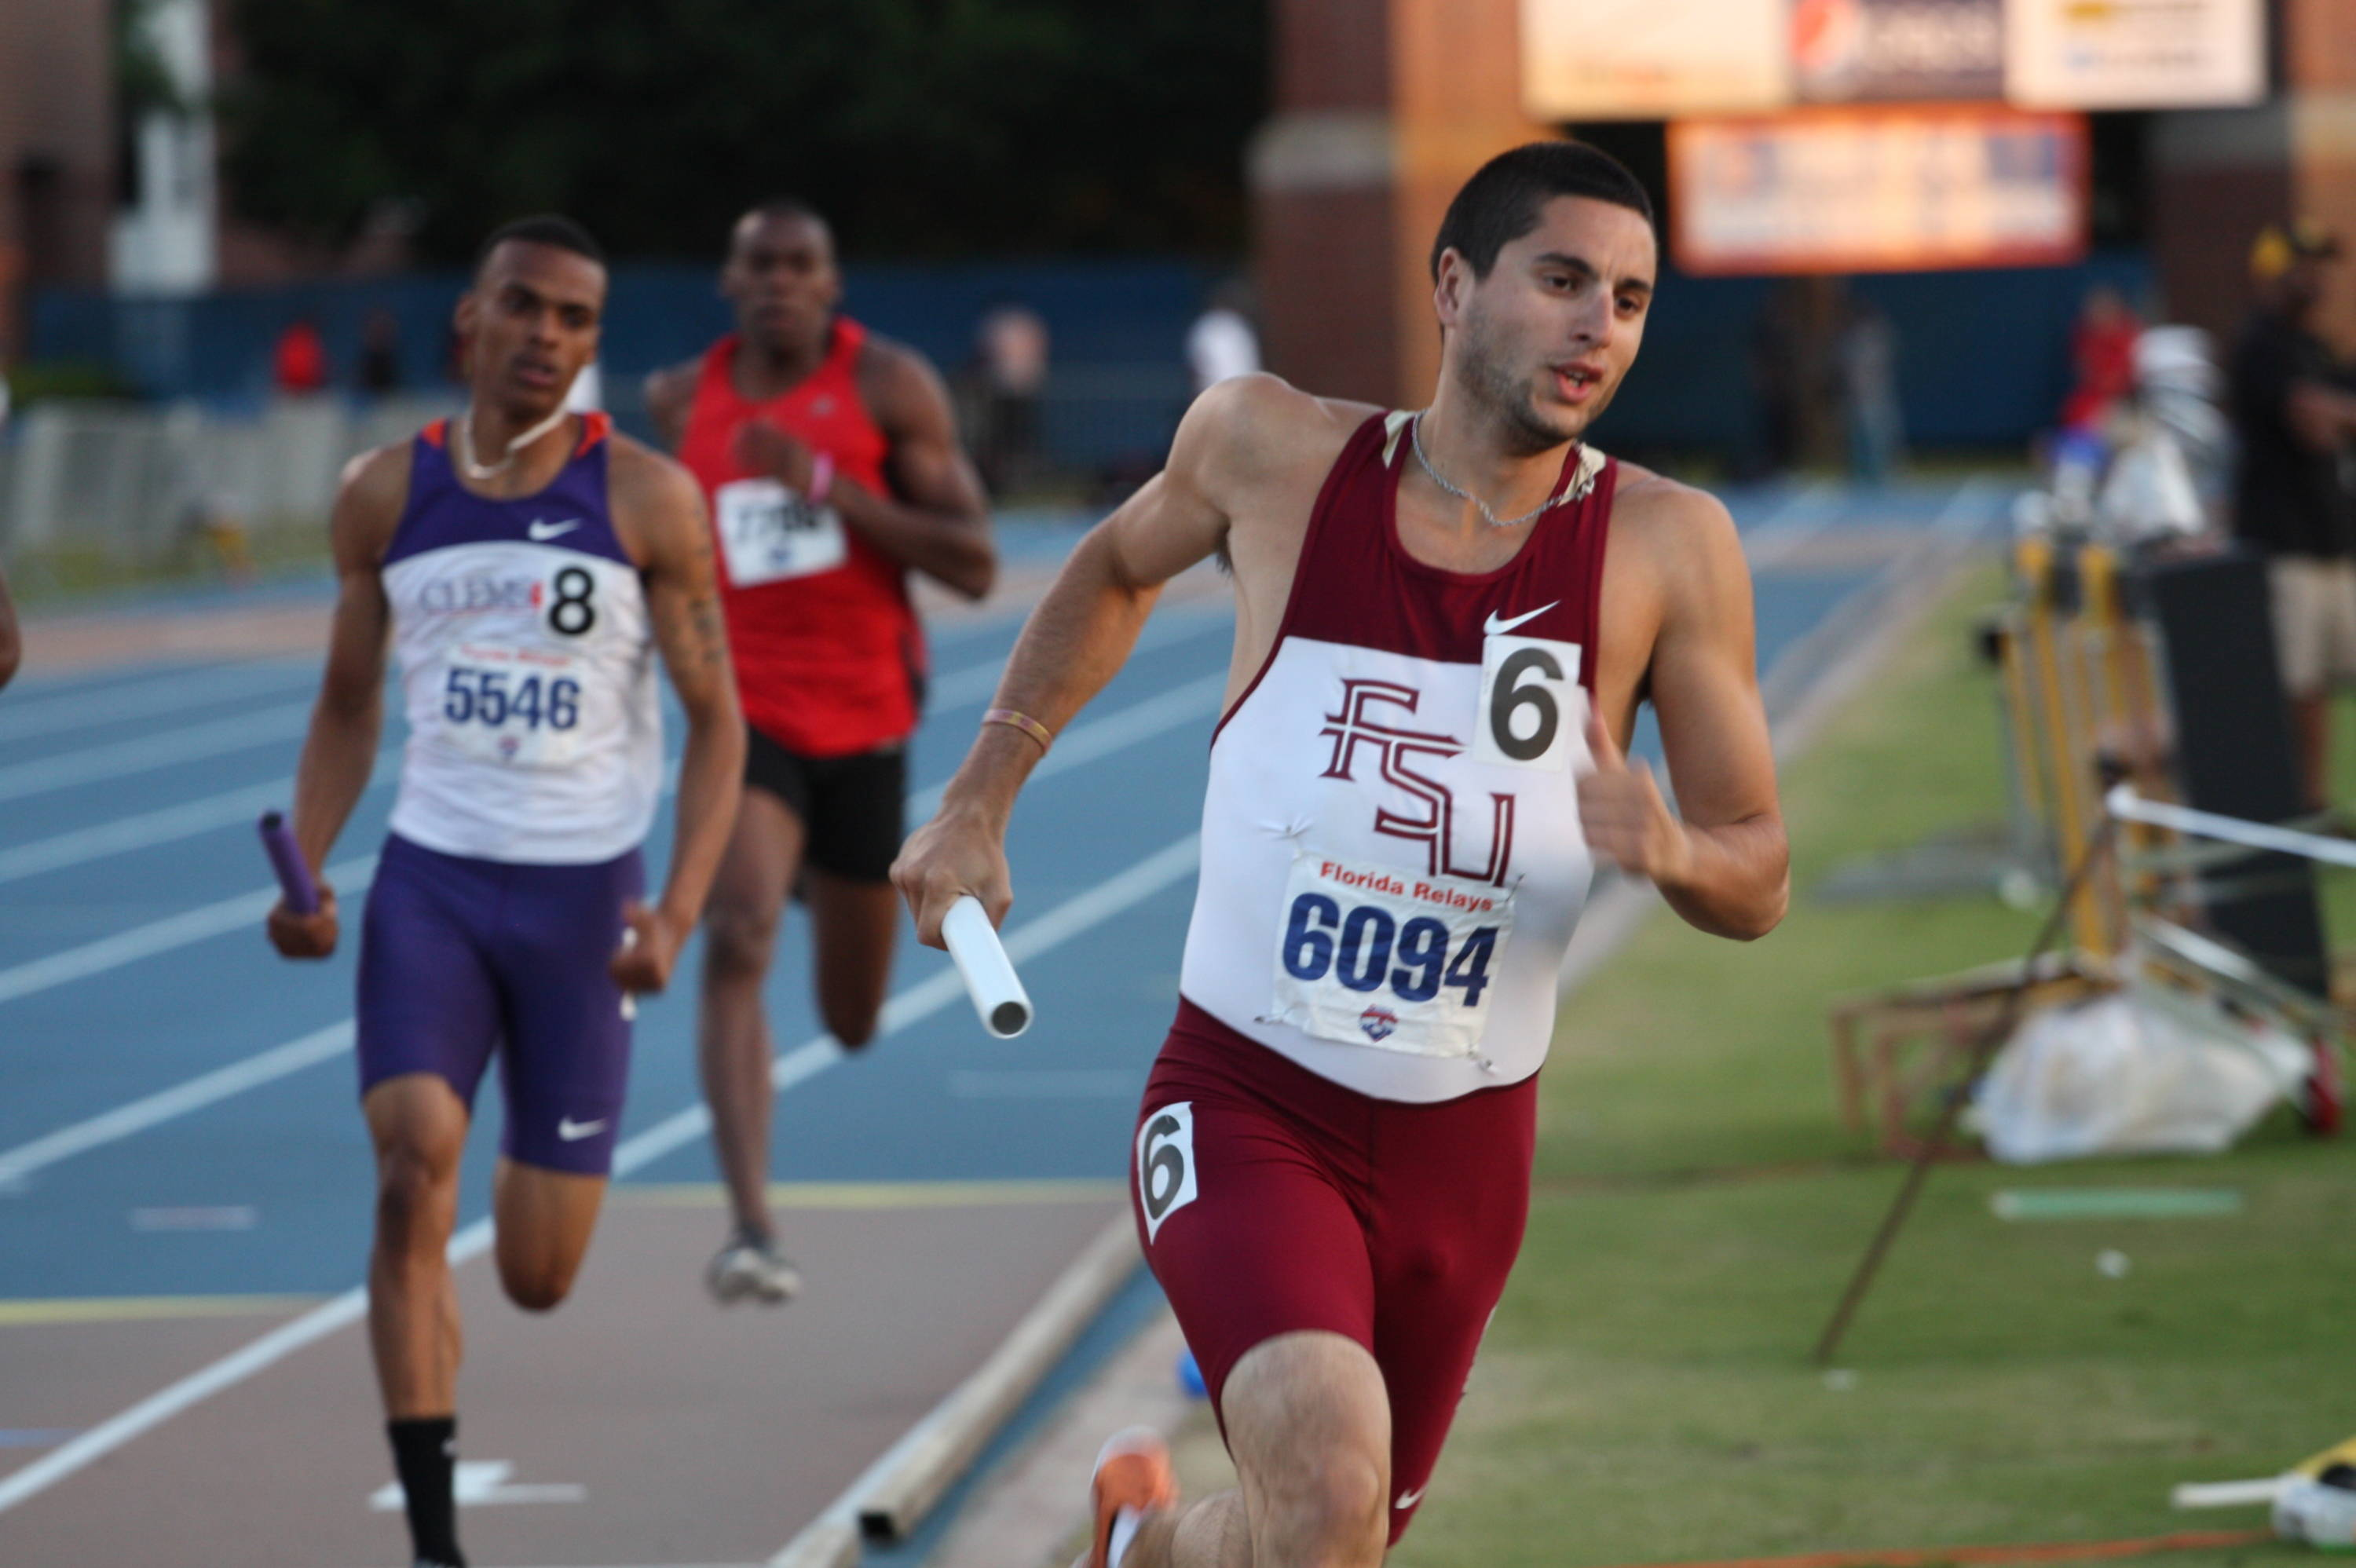 Pablo Navarrete leans into the turn during the 4x400 relay at the Florida Relays